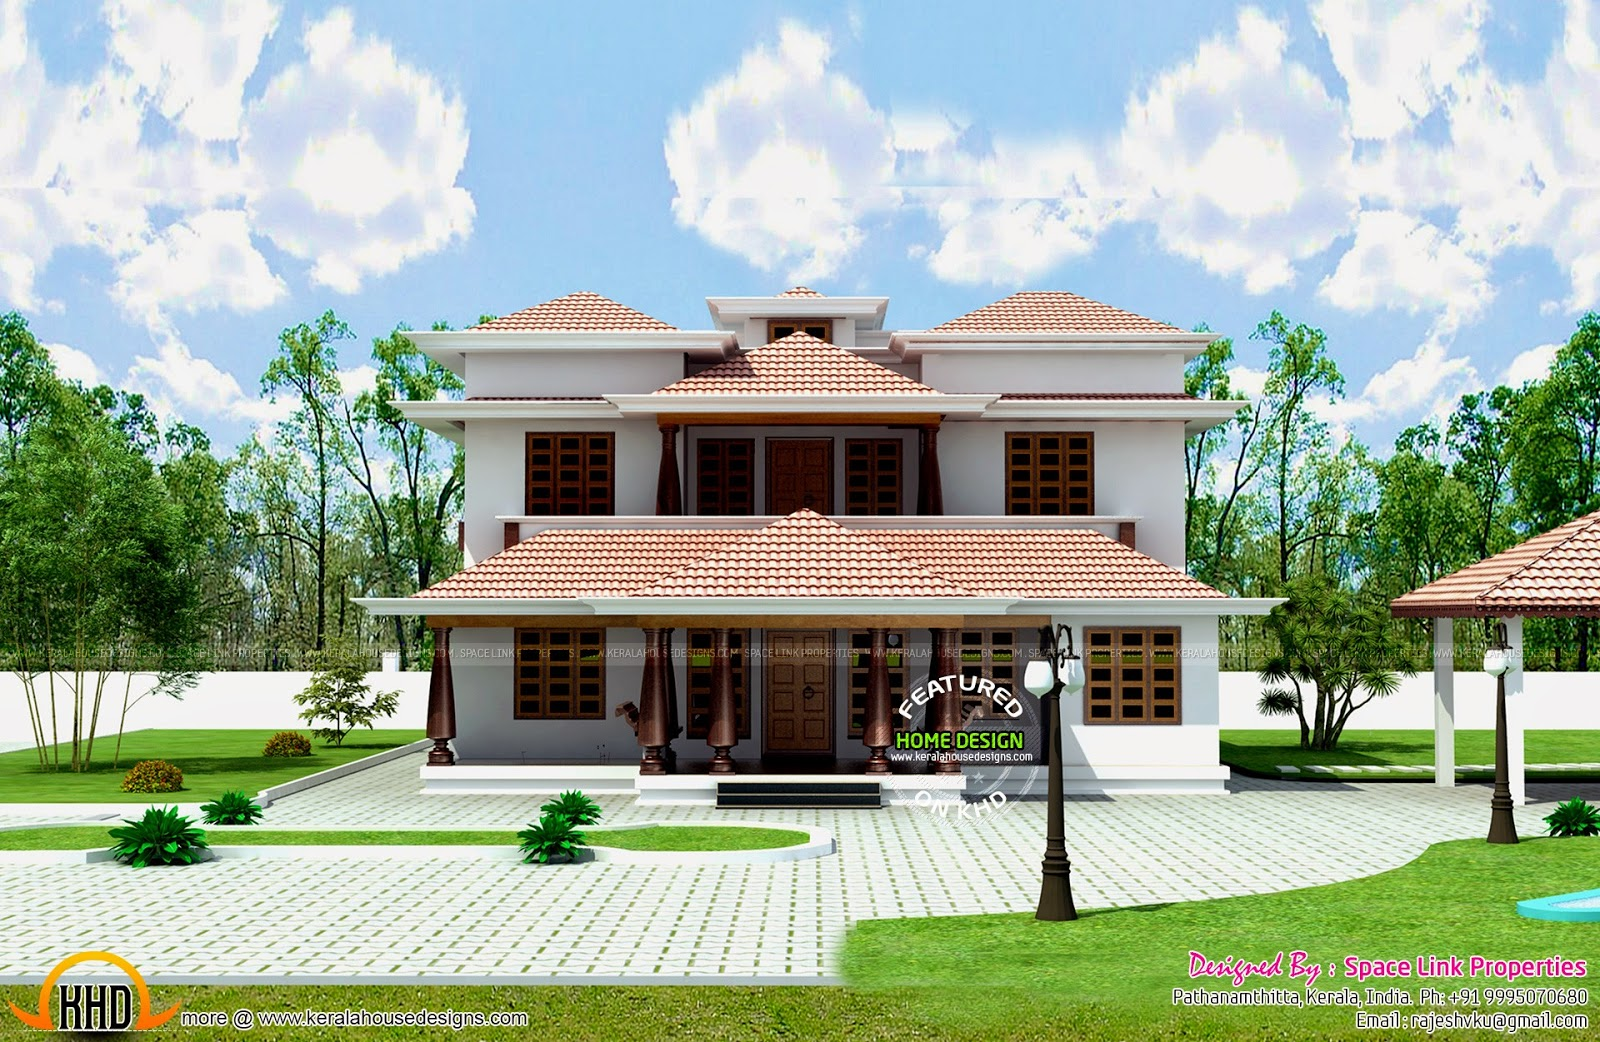 Typical kerala traditional house kerala home design and for Traditional house plans in india